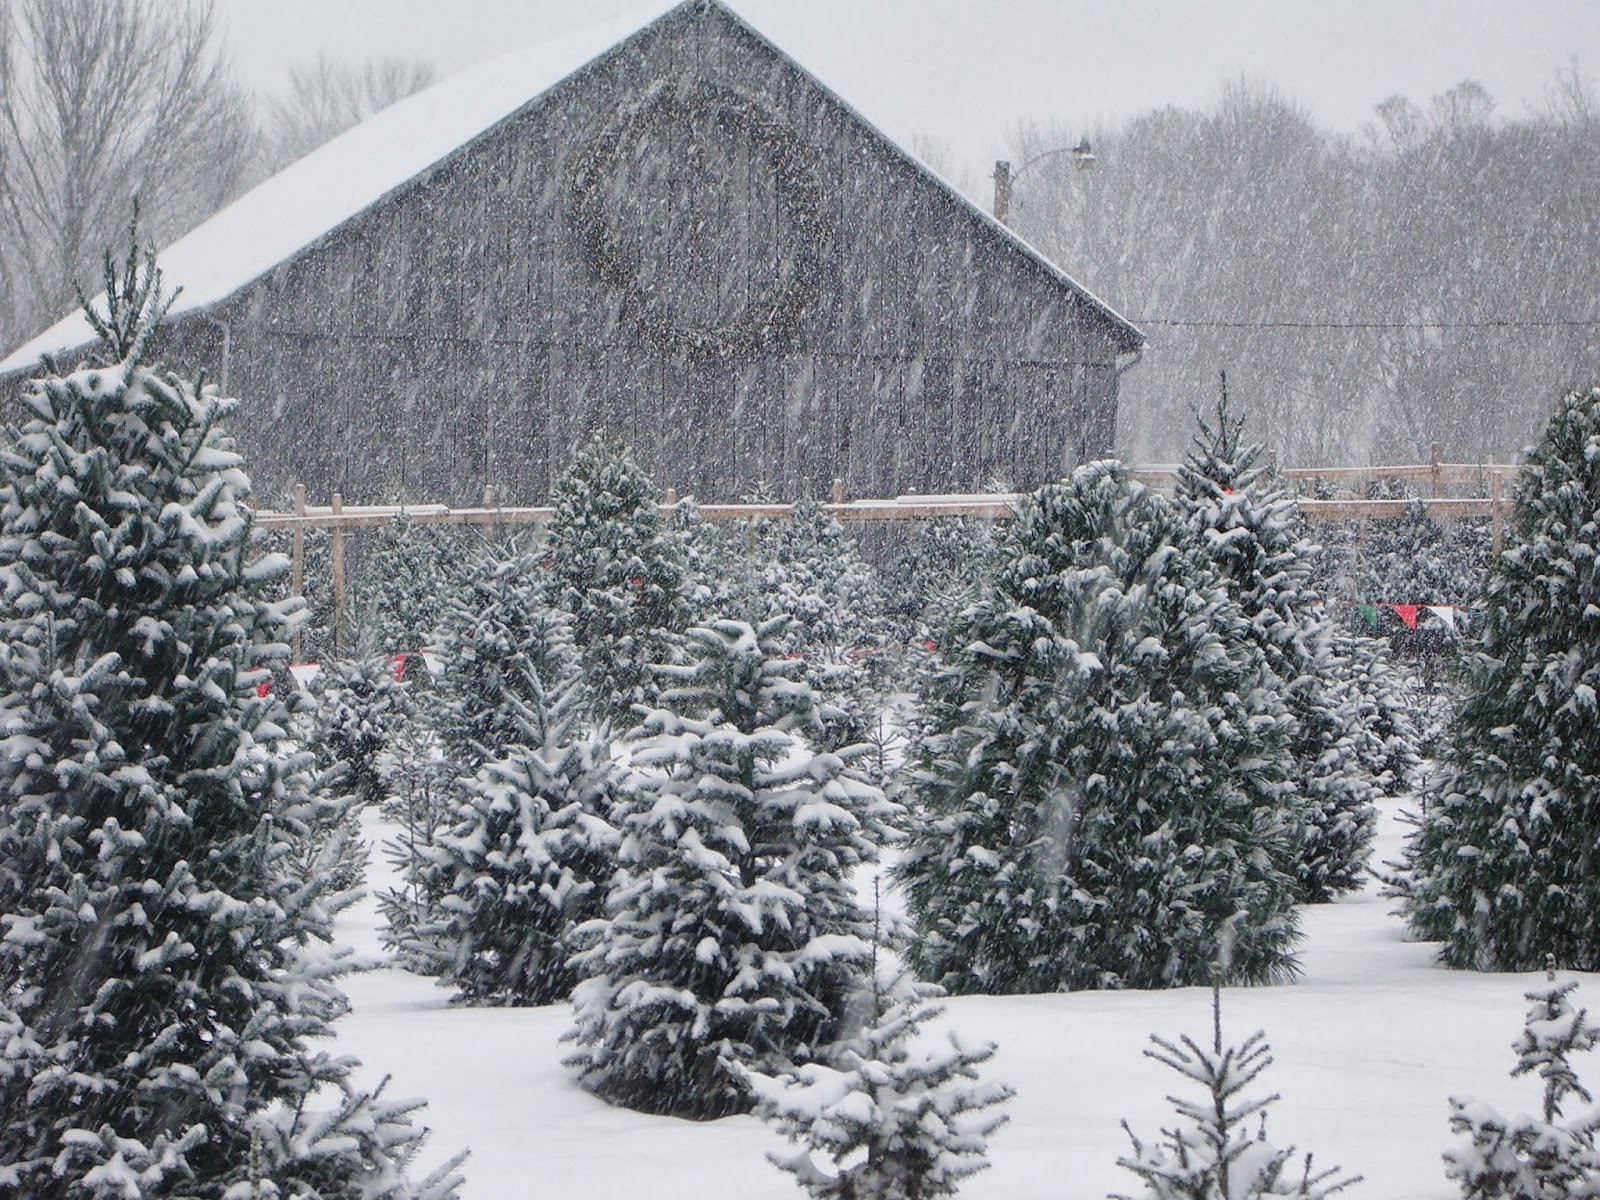 Tower Family Christmas Tree Farm: It's Beginning To Look